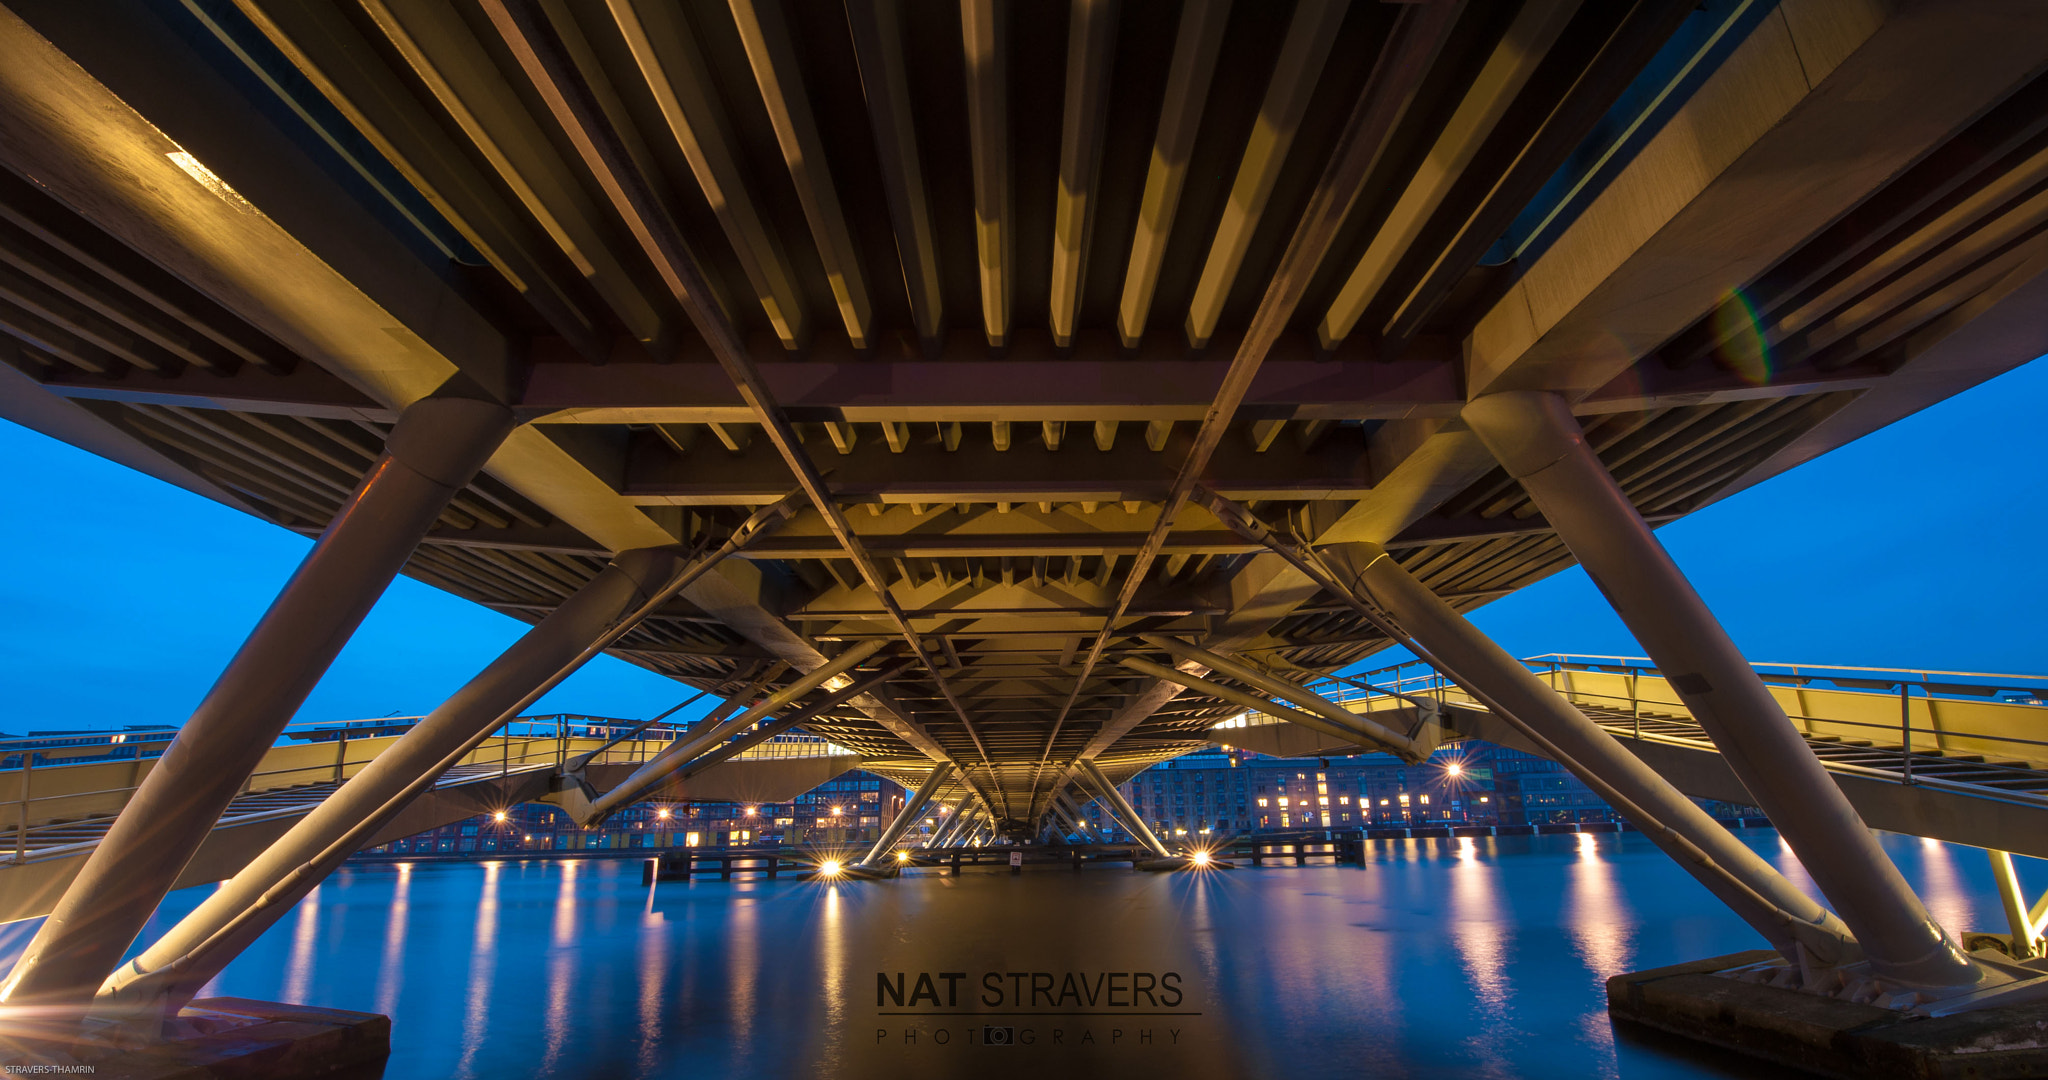 Photograph The Jan Schaefer Bridge by Nathalie Stravers on 500px